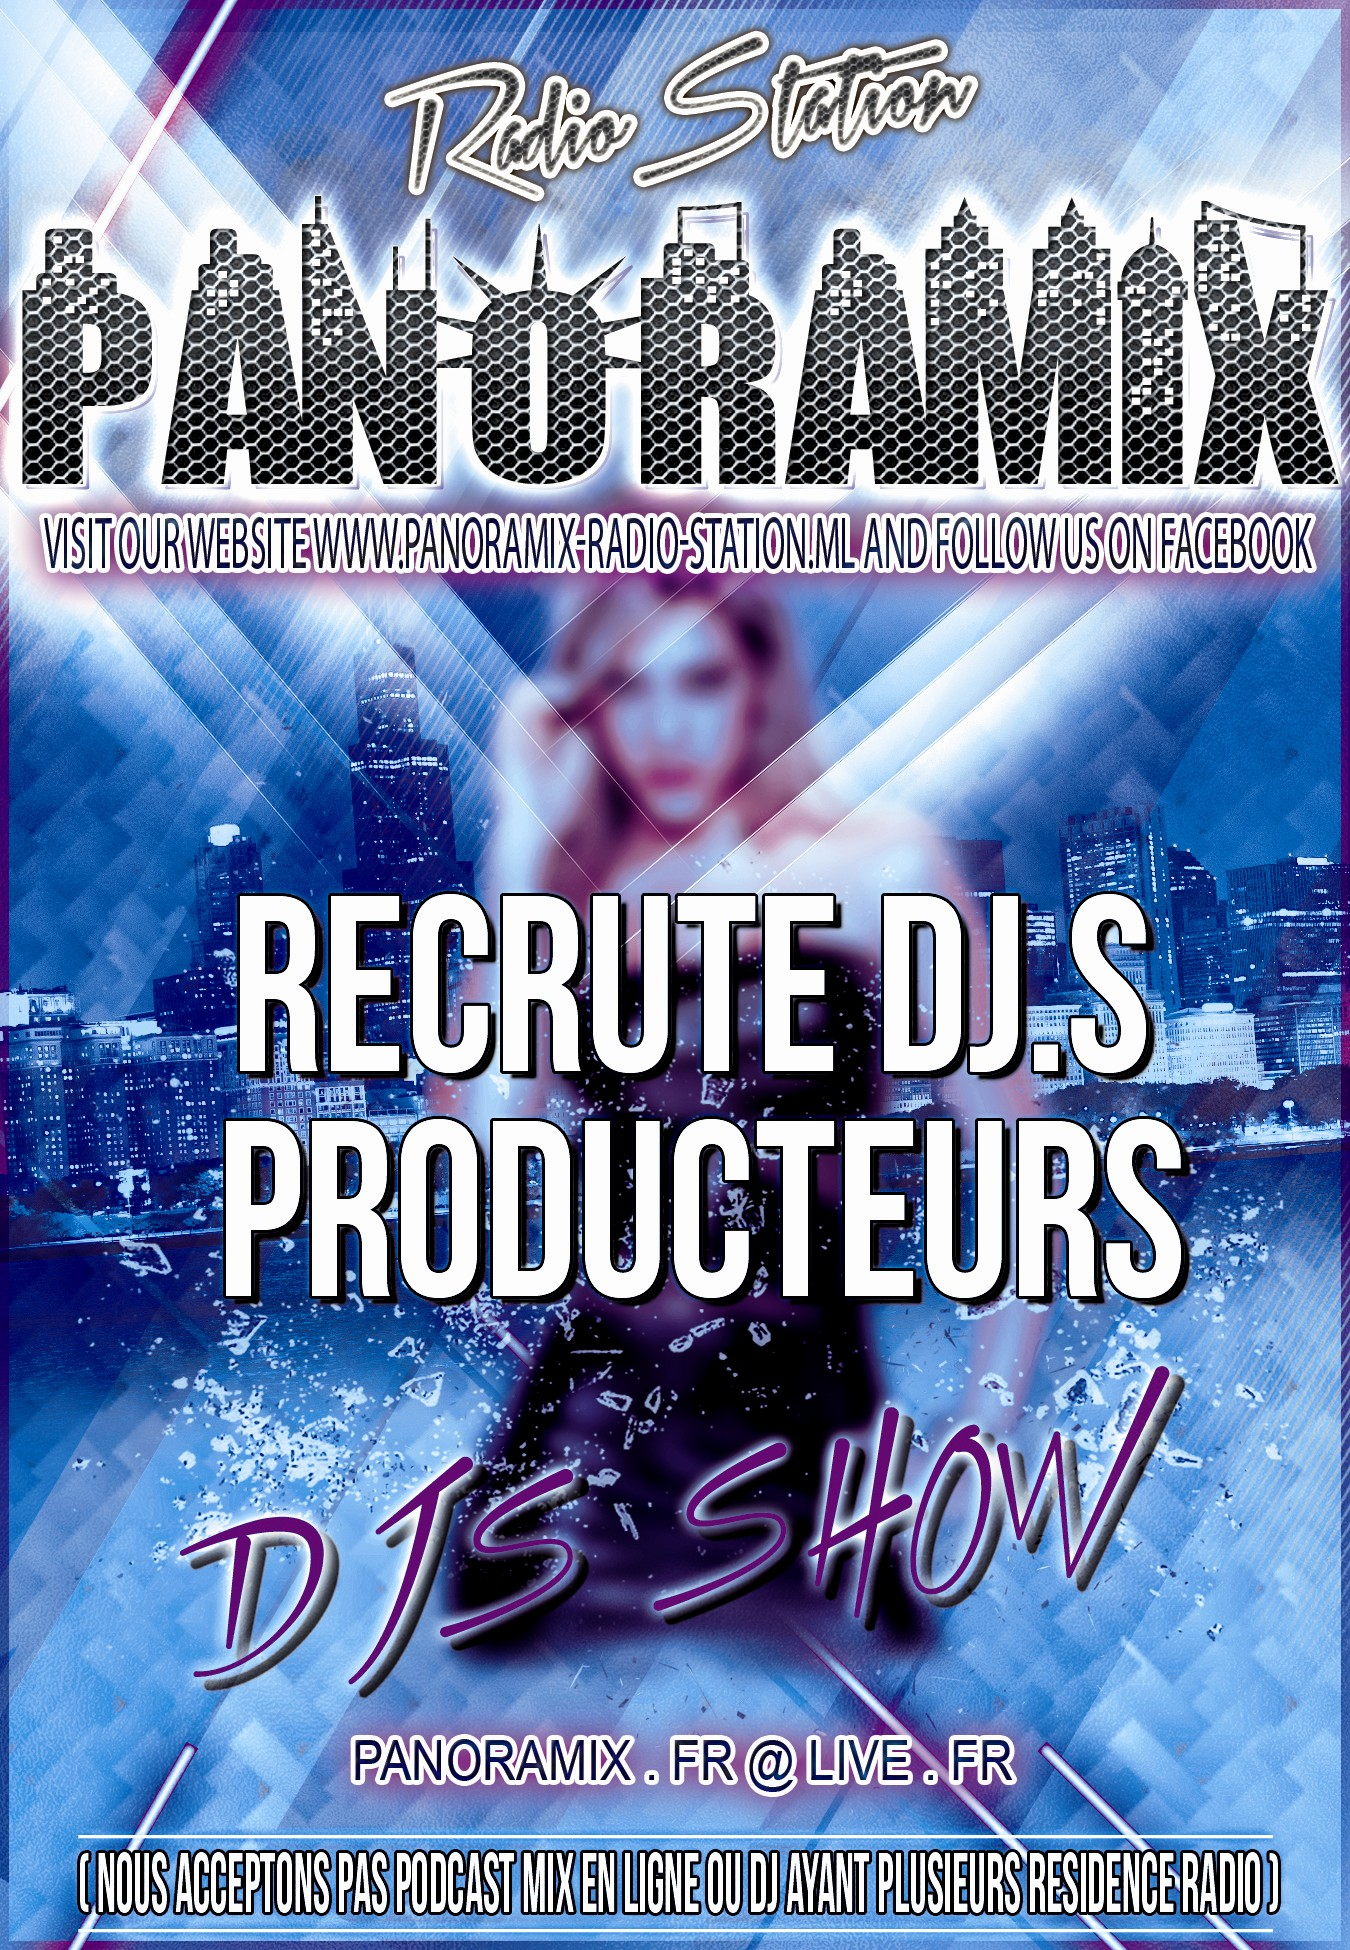 http://panoramix-radio-station.com/wp-content/uploads/2016/12/recrute-dj-panoramix-2016-1.jpg